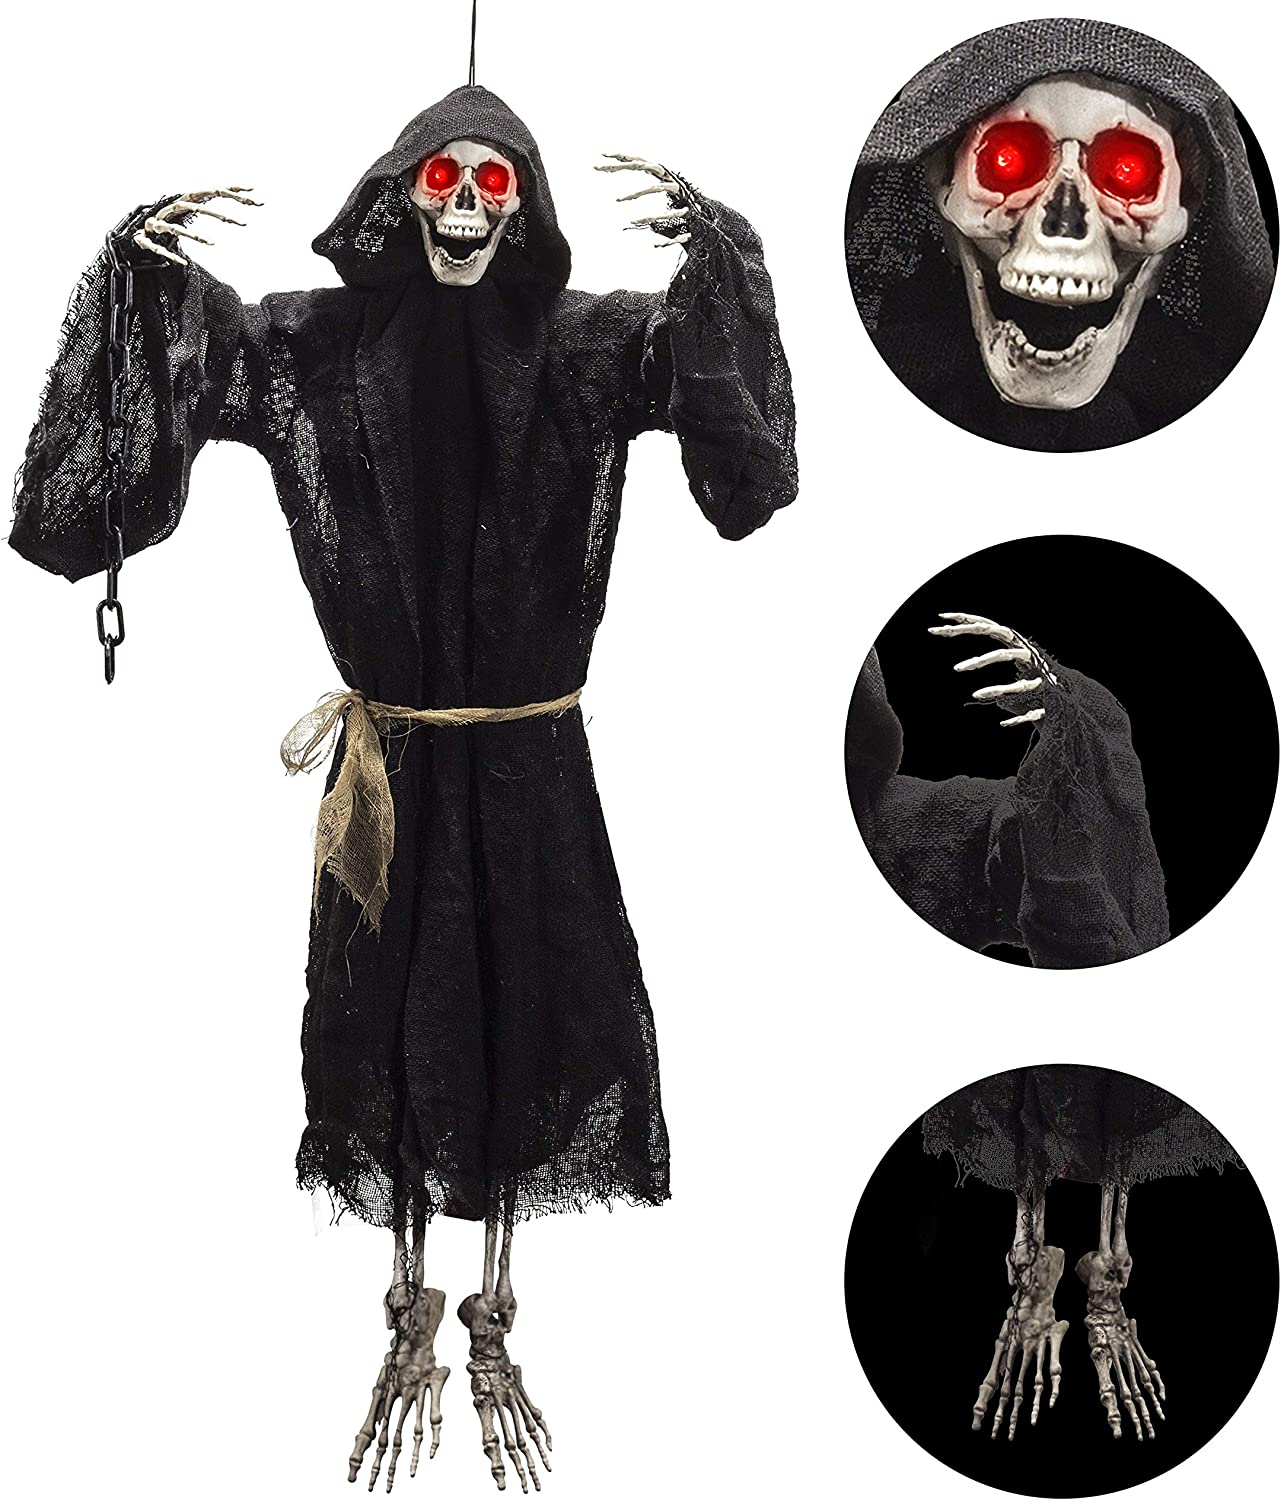 "29.5"" Hanging Halloween Decoration Grim Reaper with Red LED Eyes, Lighted Halloween Hanging Ghost Monk Decoration for Indoor and Outdoor Decor"